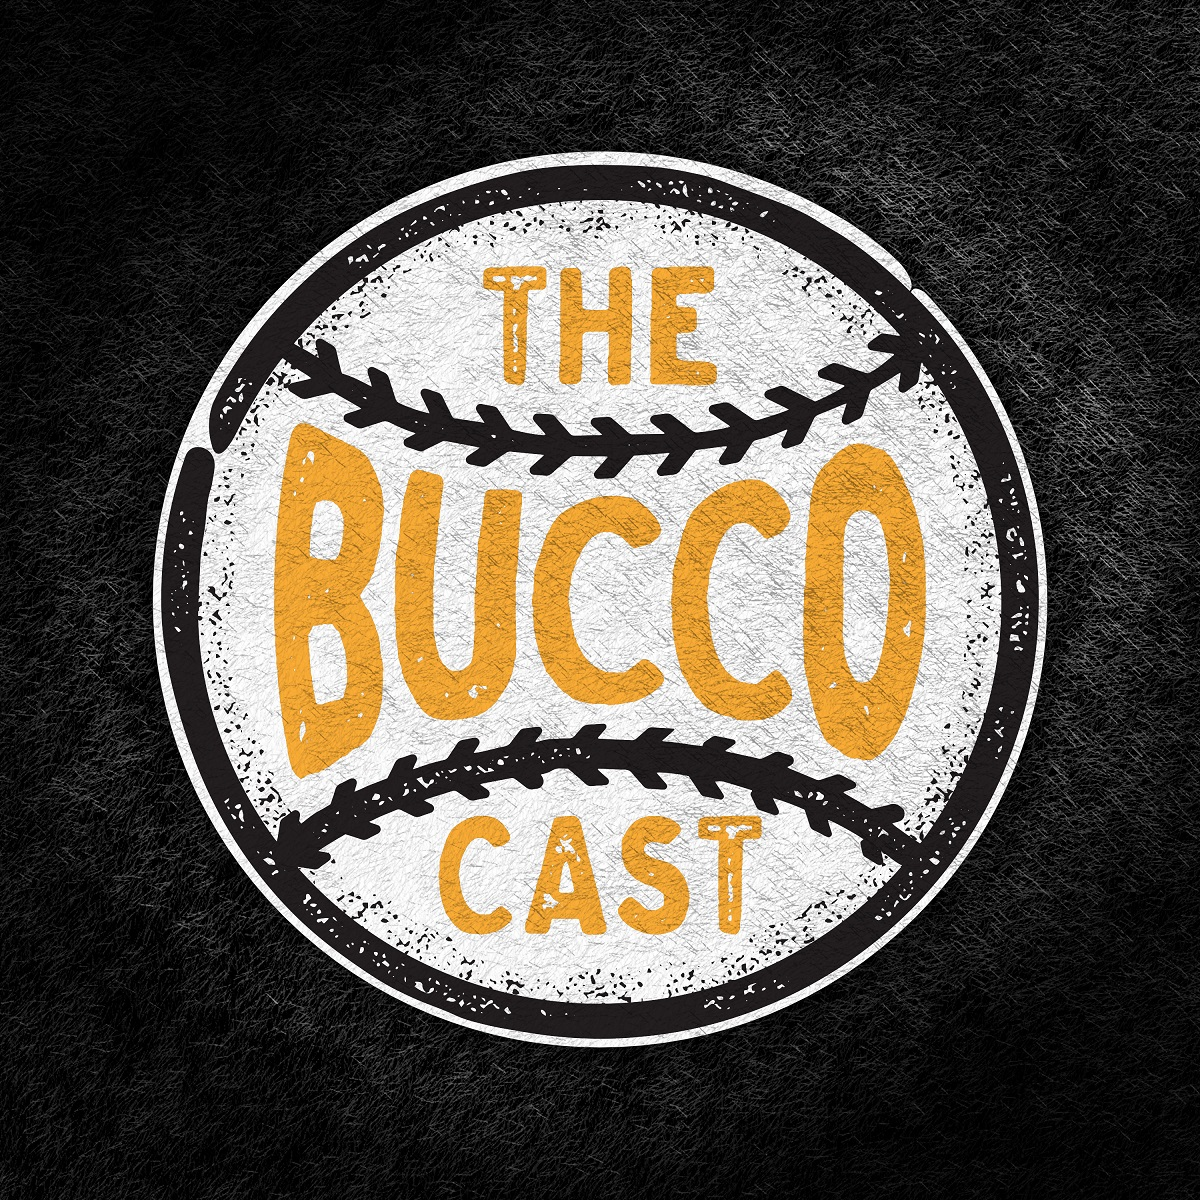 The Buccocast album art